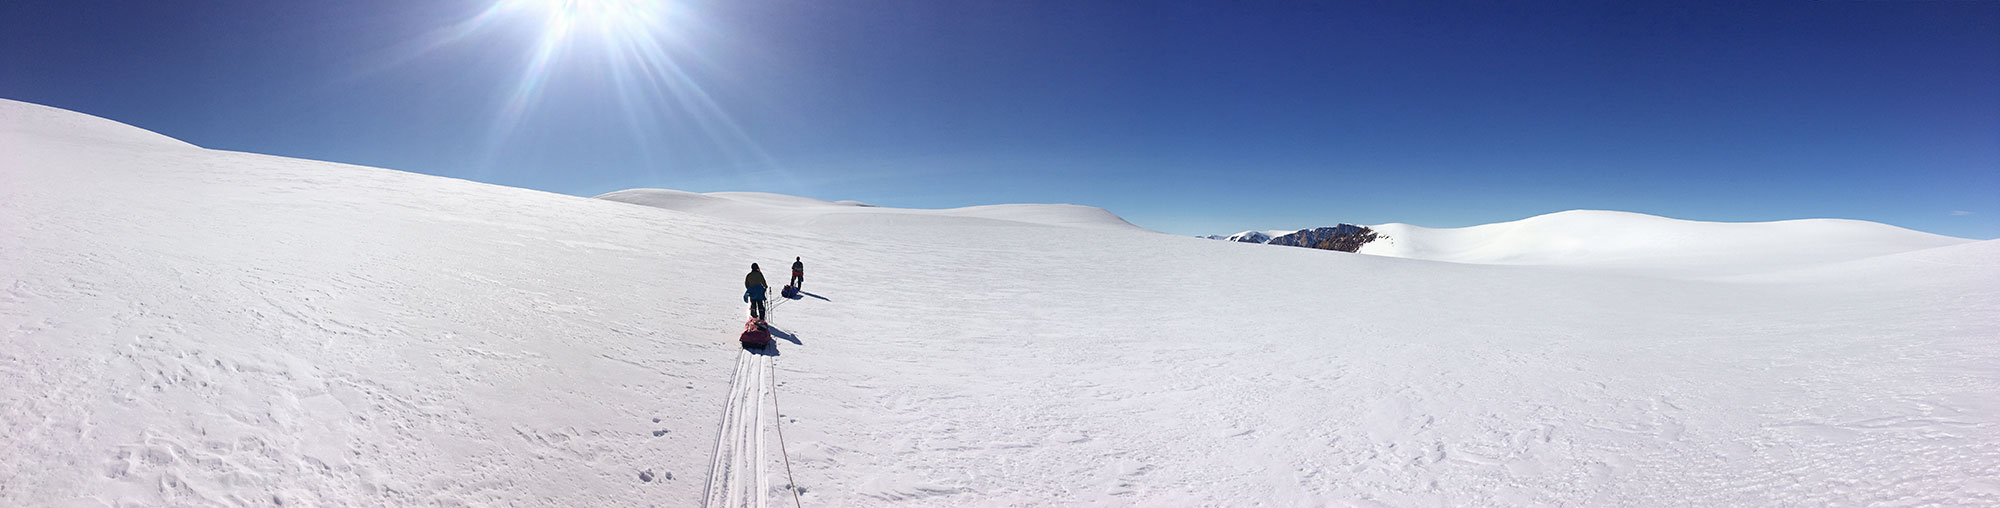 skiing on ellesmere island